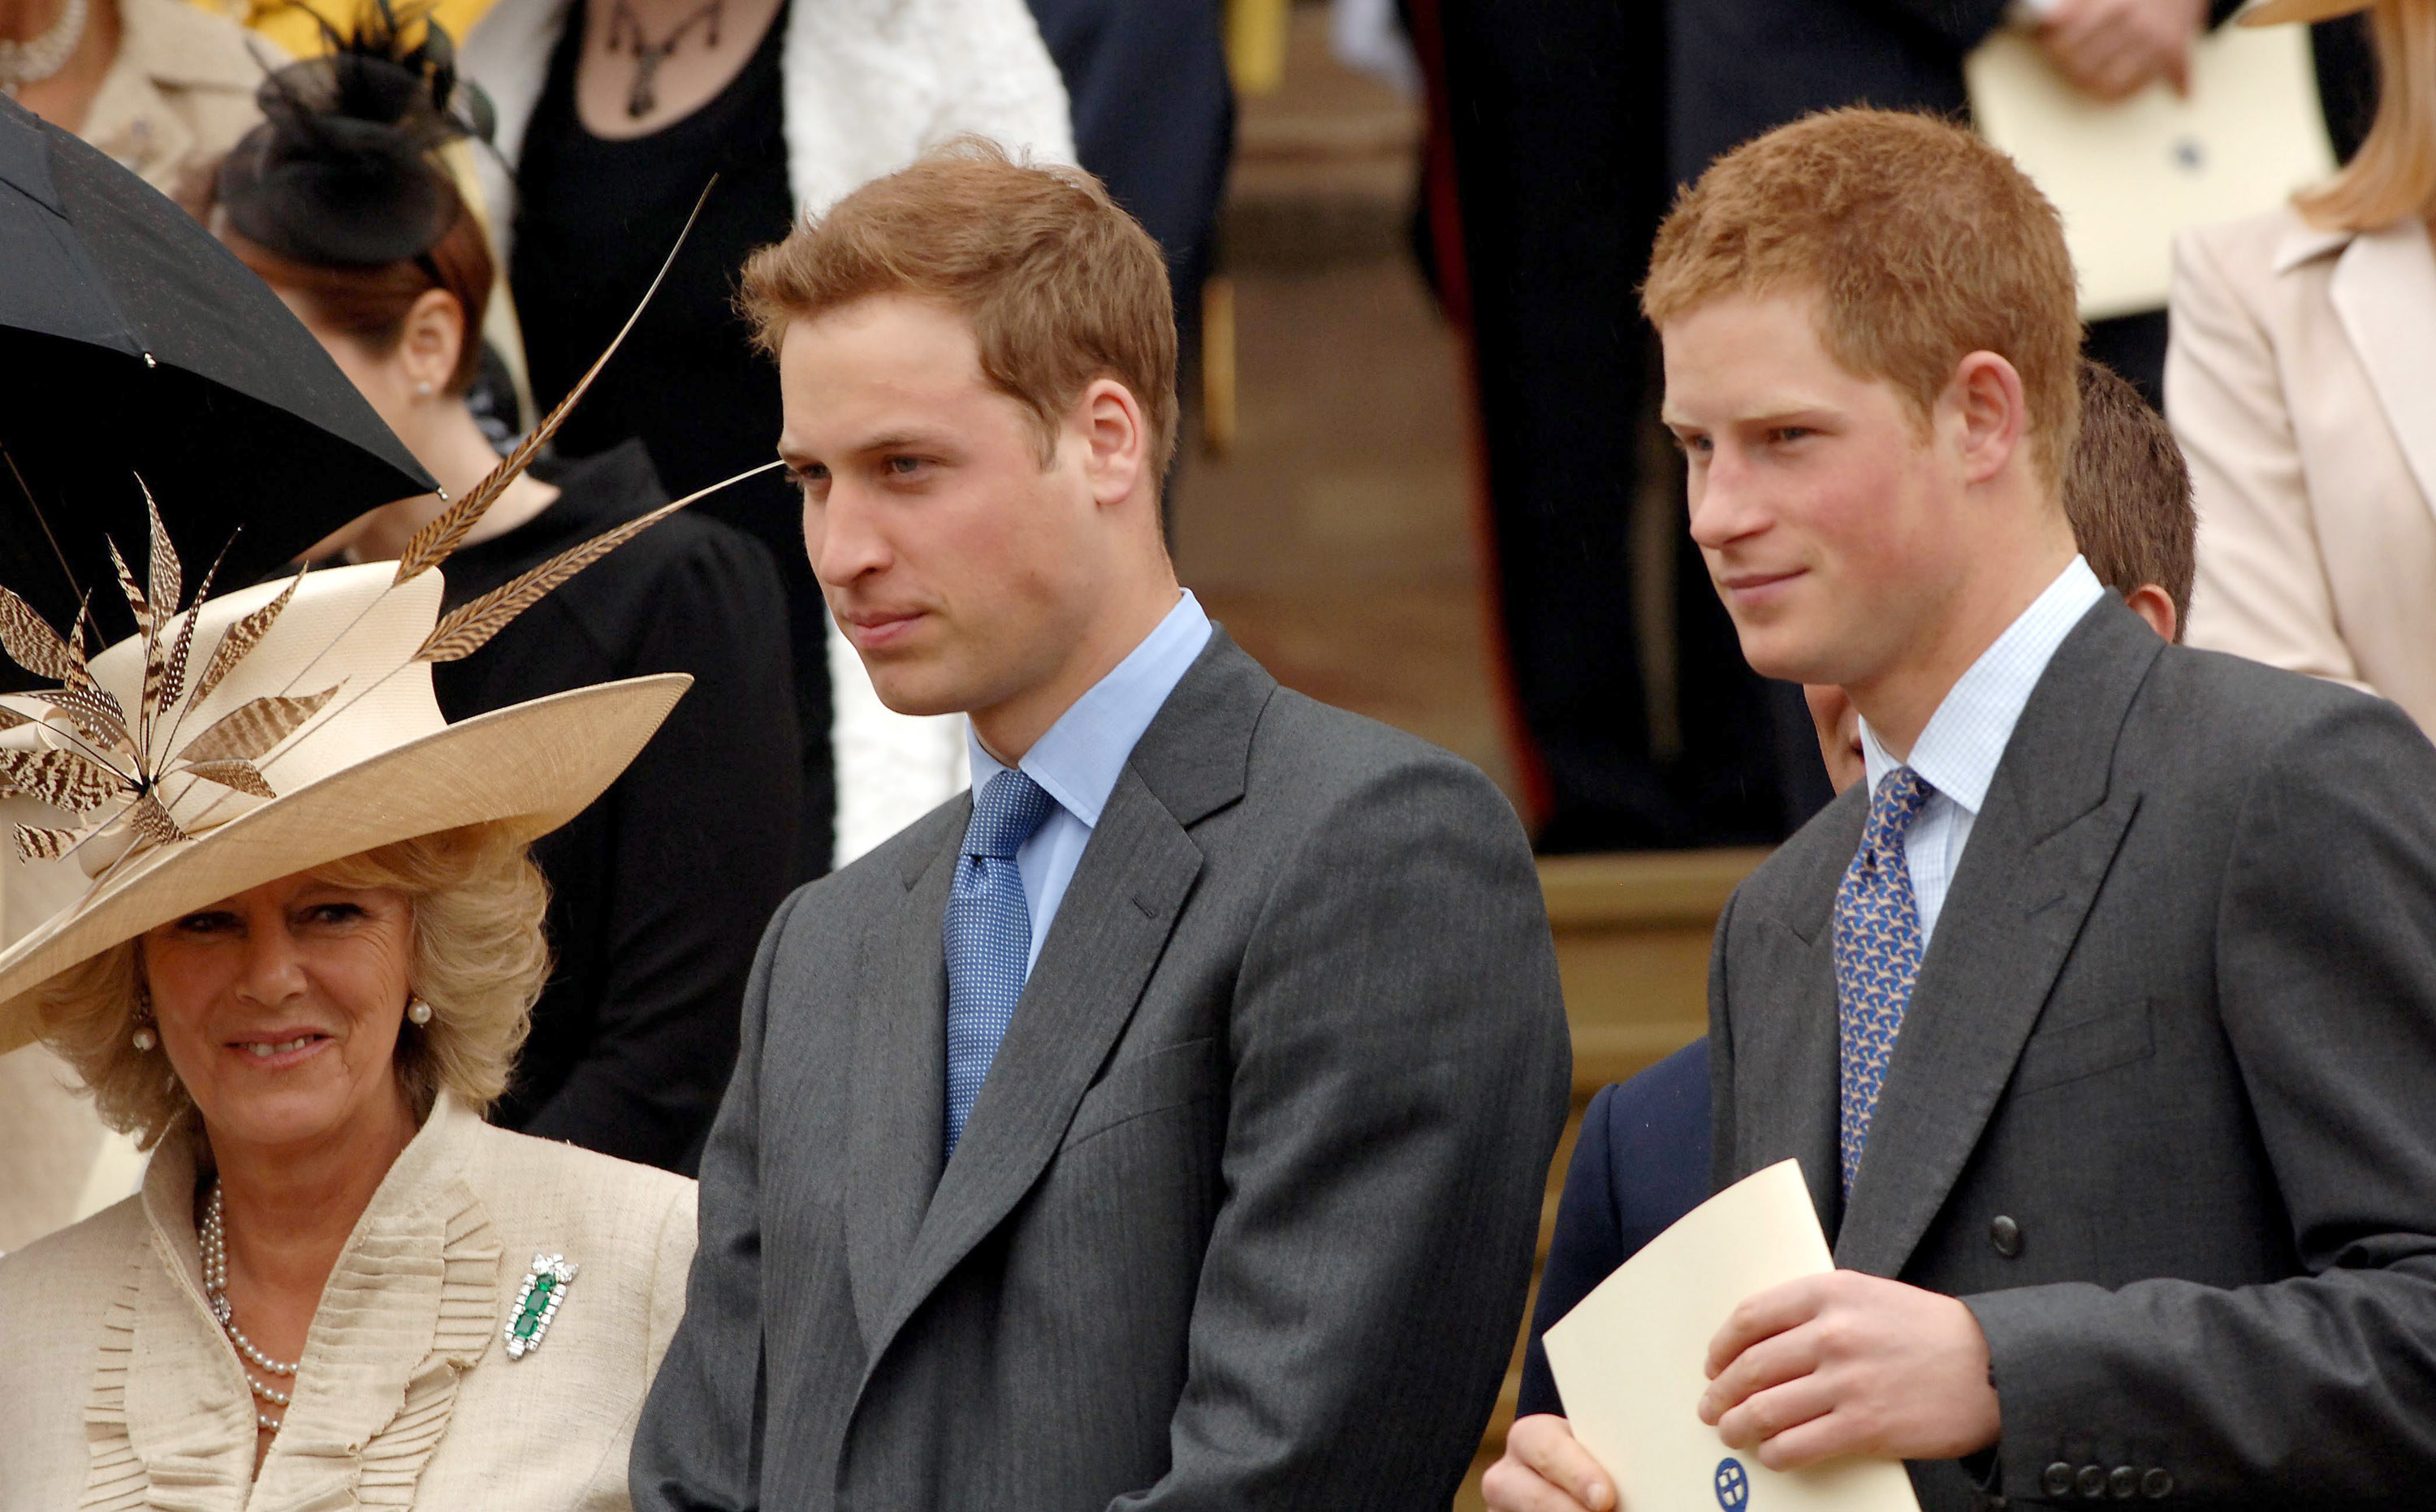 Harry with his brother, Prince William